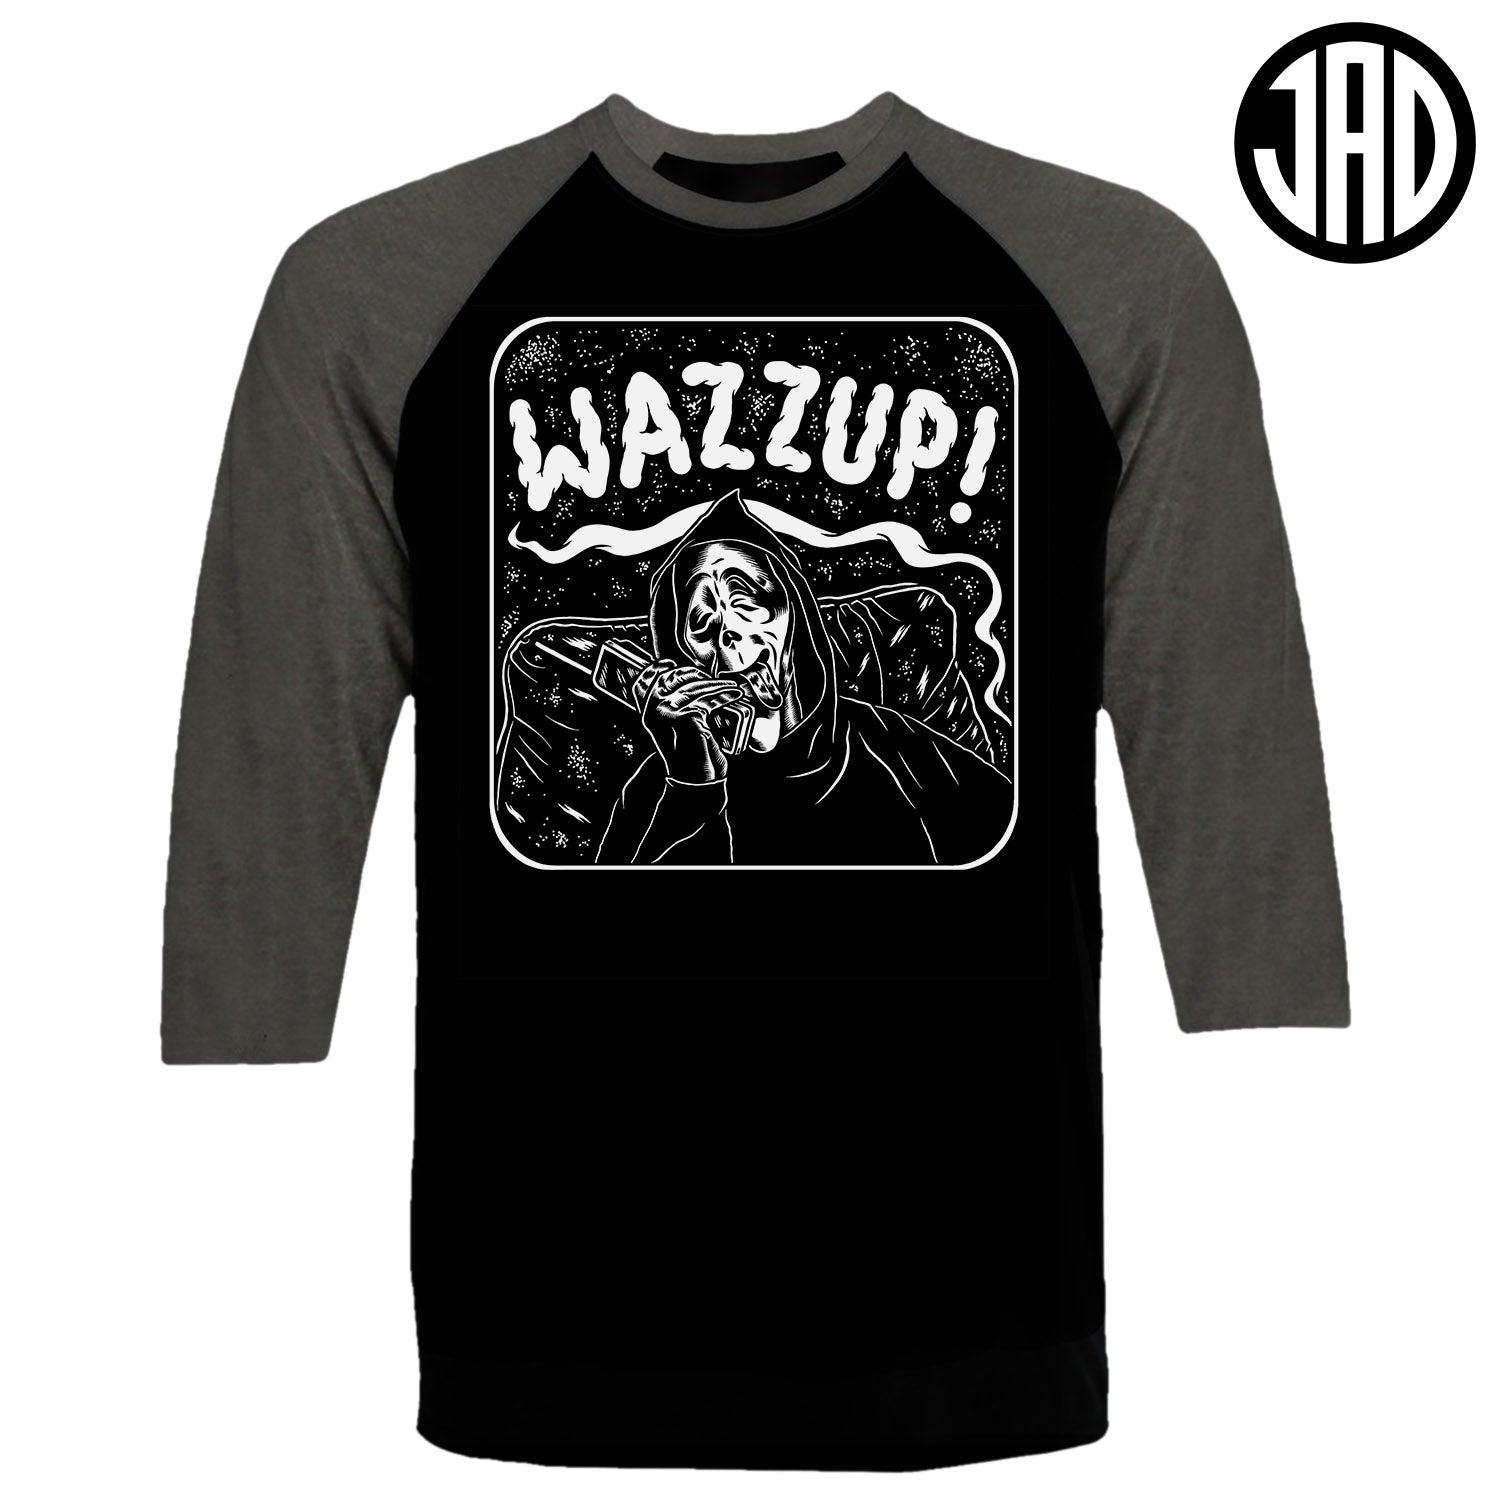 Wazzup - Men's Baseball Tee